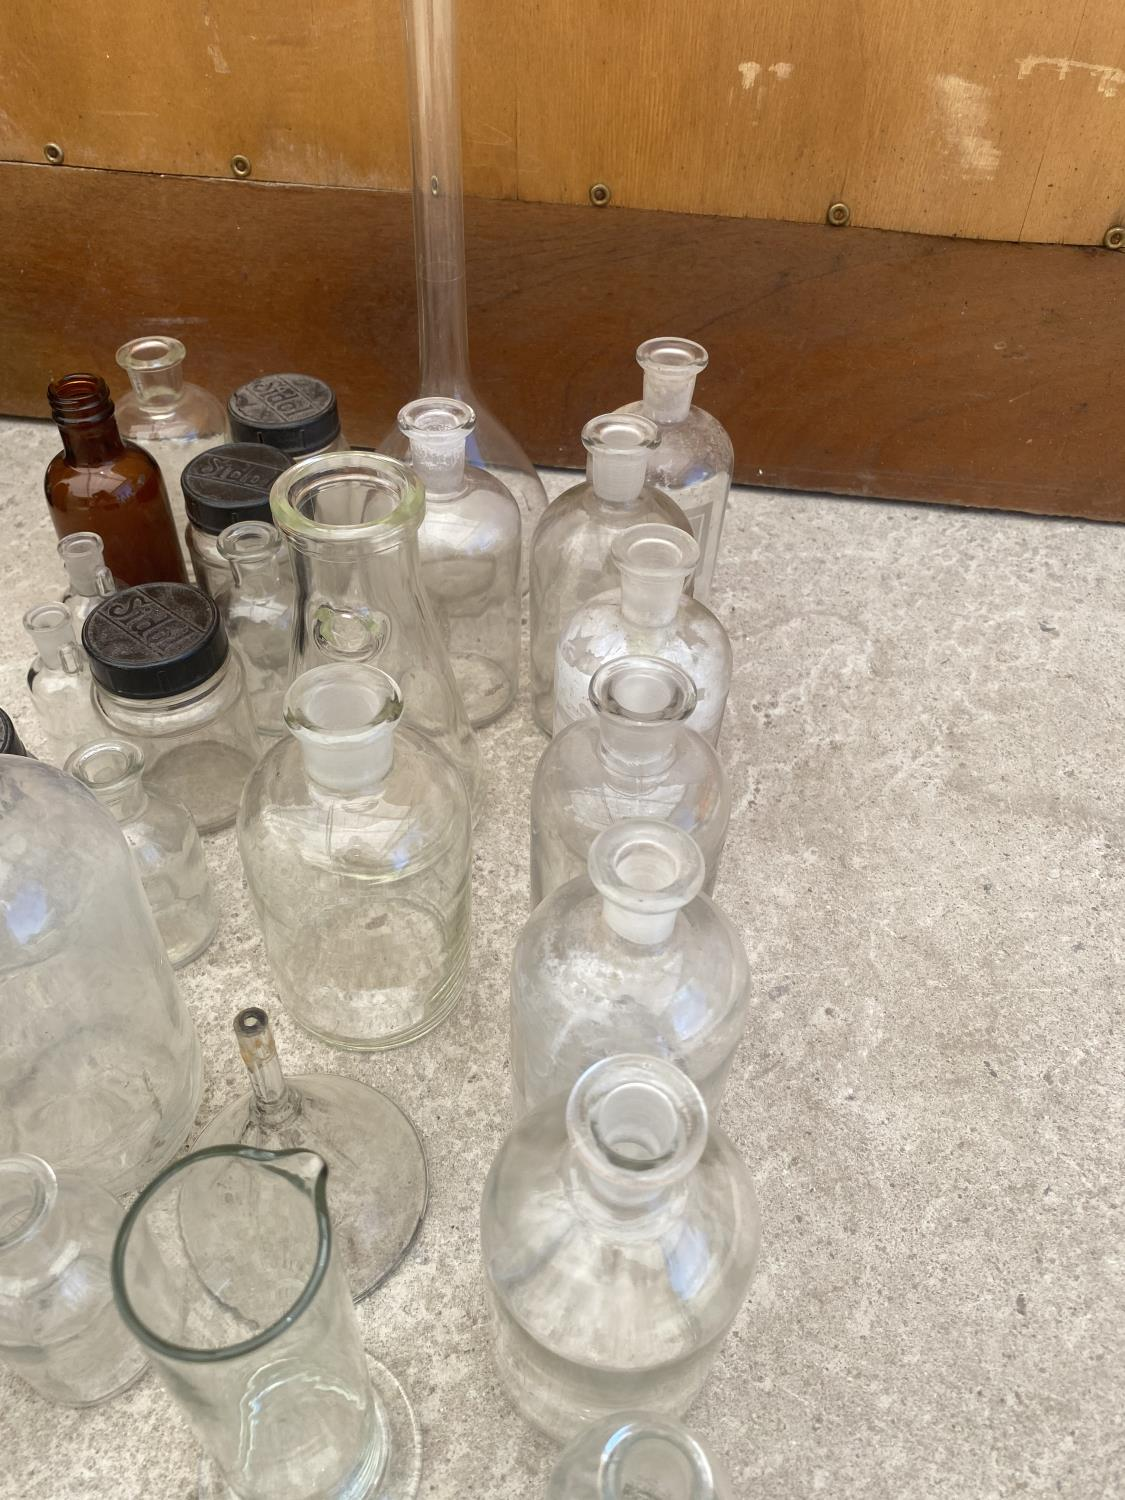 AN ASSORTMENT OF GLASS LAB BOTTLES AND JARS - Image 4 of 5